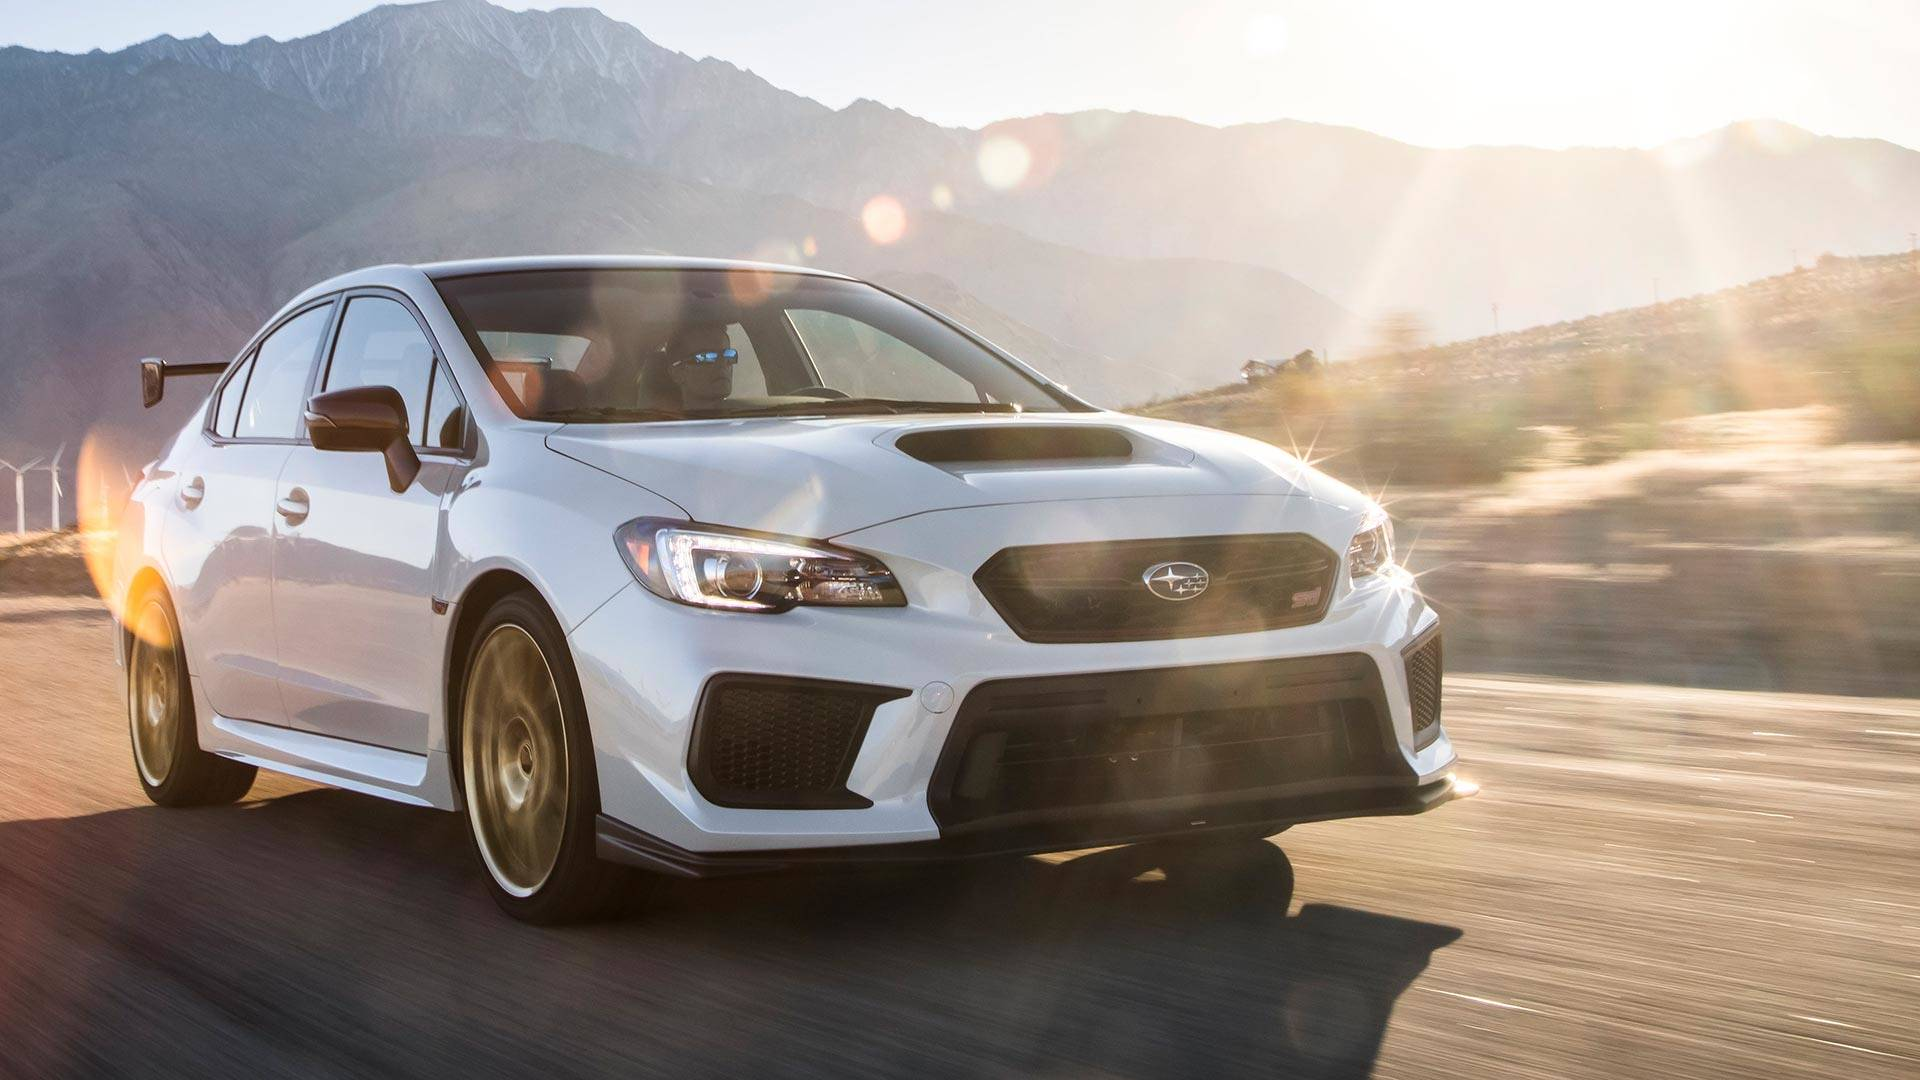 2018 Subaru Wrx Sti Type Ra First Drive Lots Of Fun Lots Of Cash